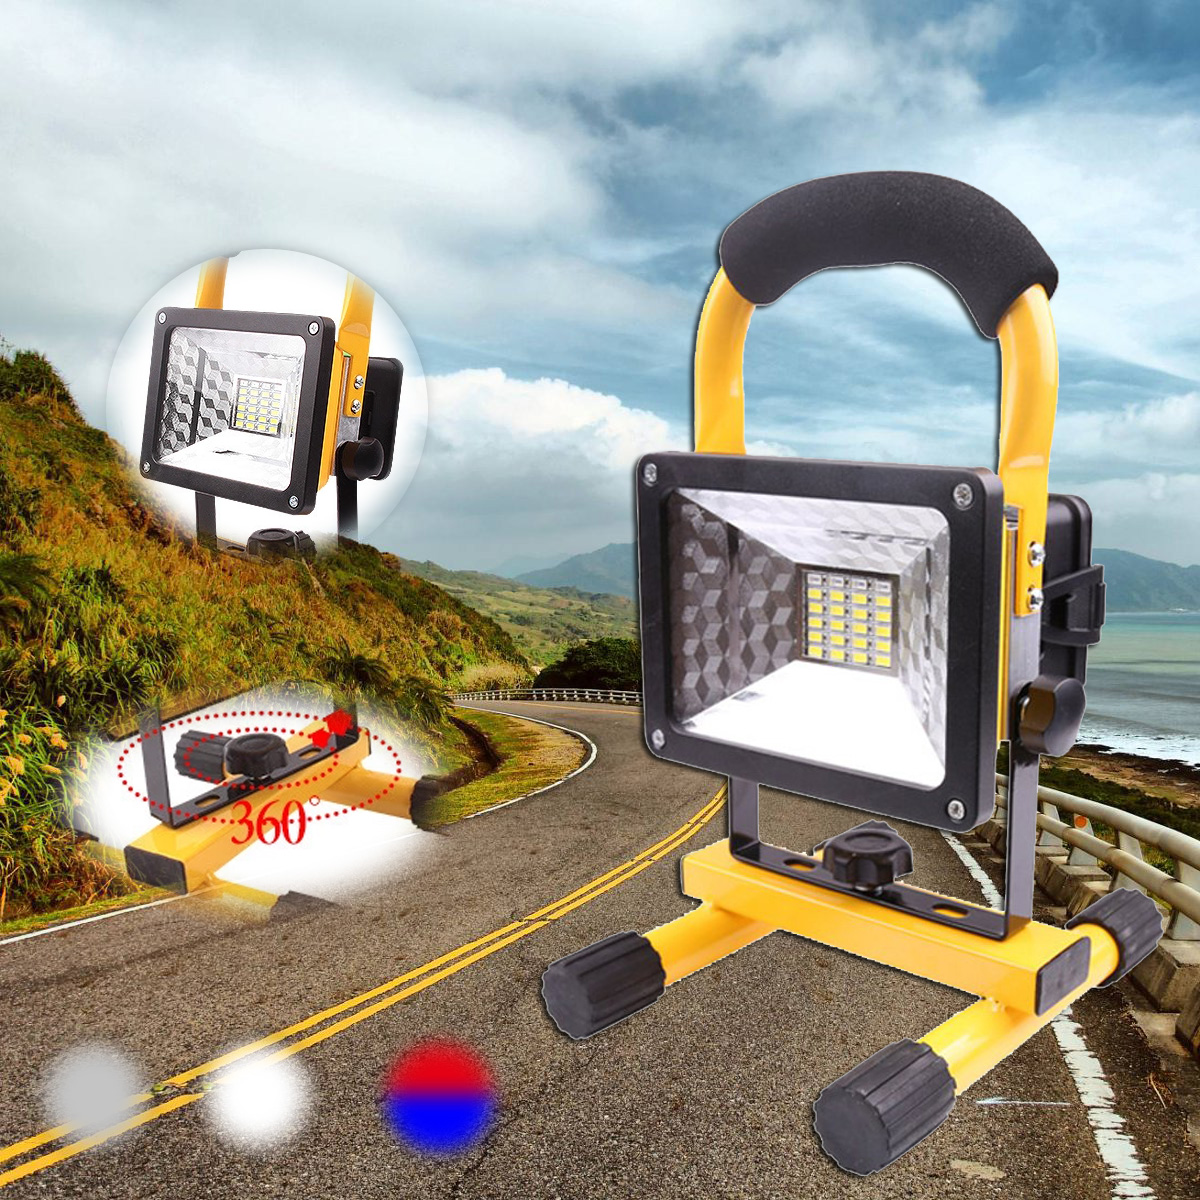 цена на 1Set 30W 24LED Portable Rechargeable Flood Light LED Work Light Camping Outdoor Lawn Lamp